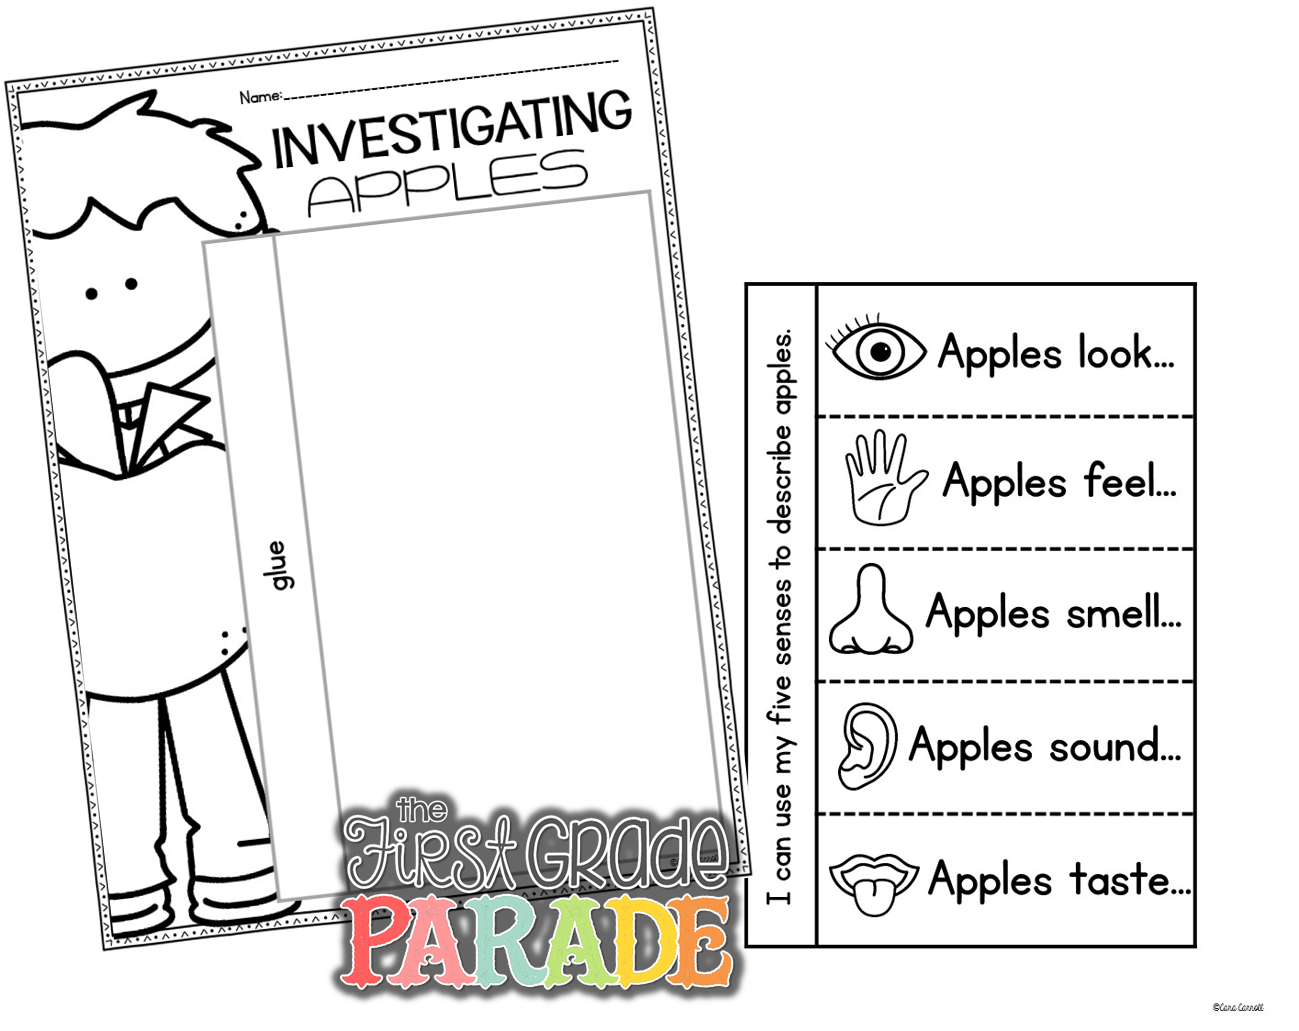 Apple tasting clipart png freeuse library Apples, Apples, EVERYWHERE! - The First Grade Parade png freeuse library